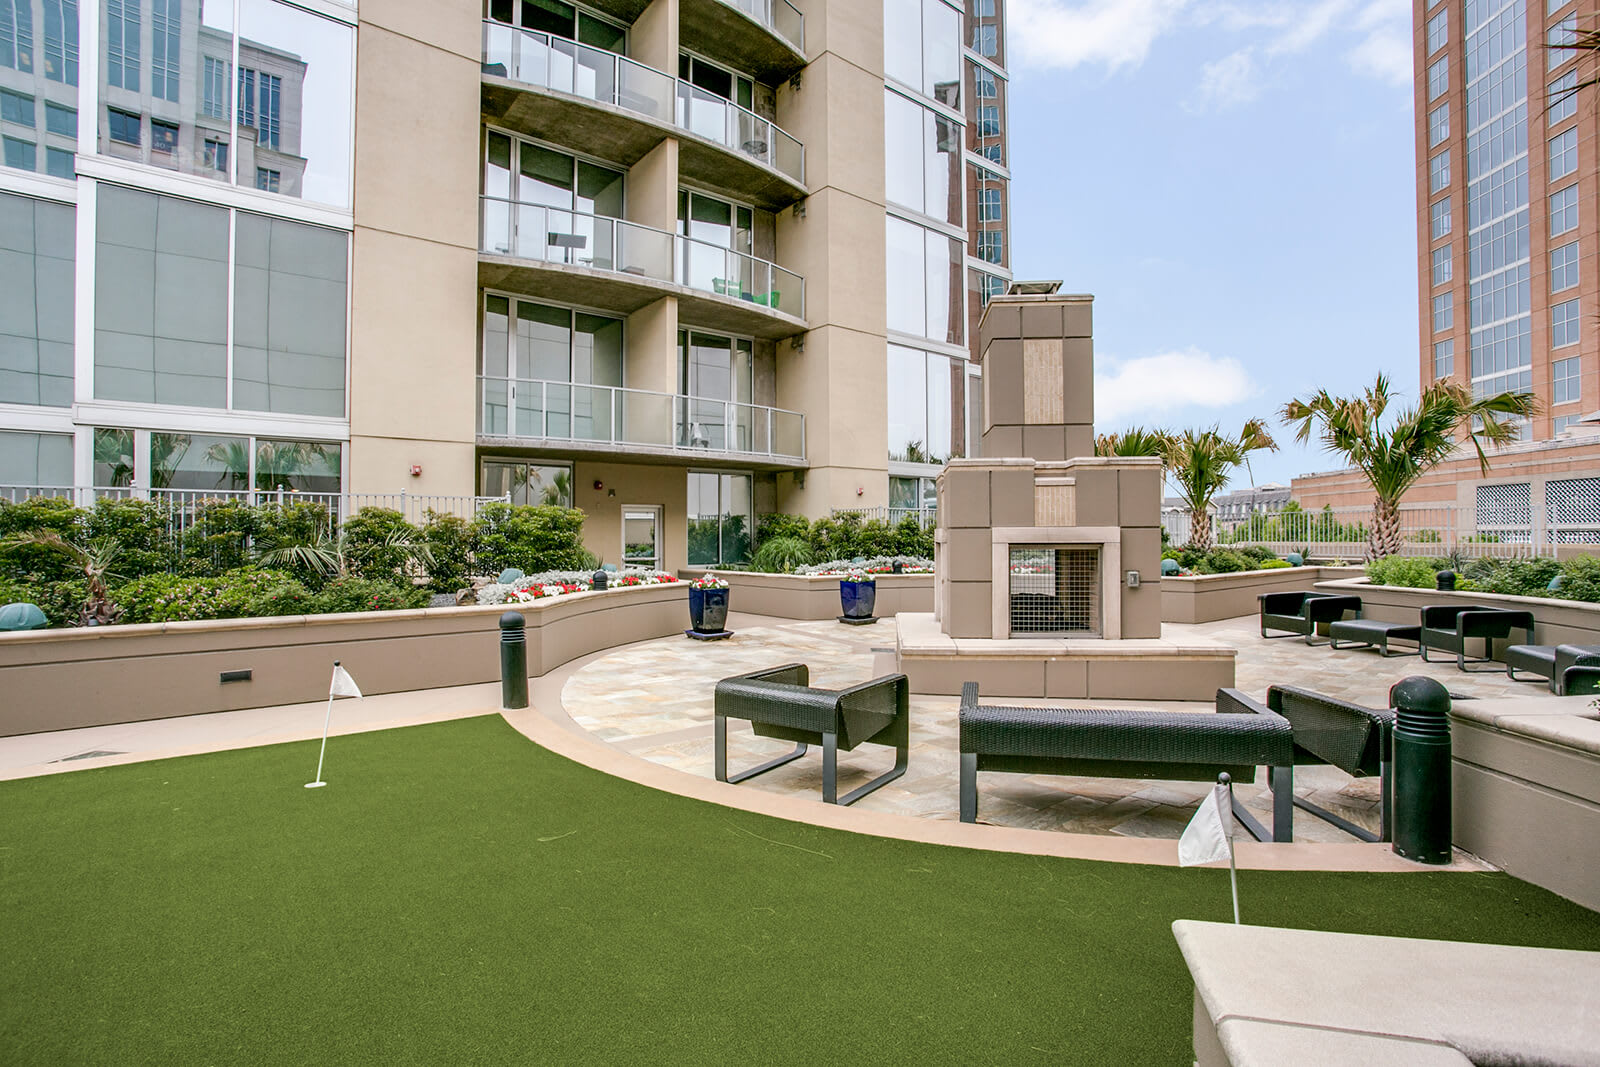 Outdoor Fireplace and Lounge Area at Glass House by Windsor, 2728 McKinnon Street, Dallas